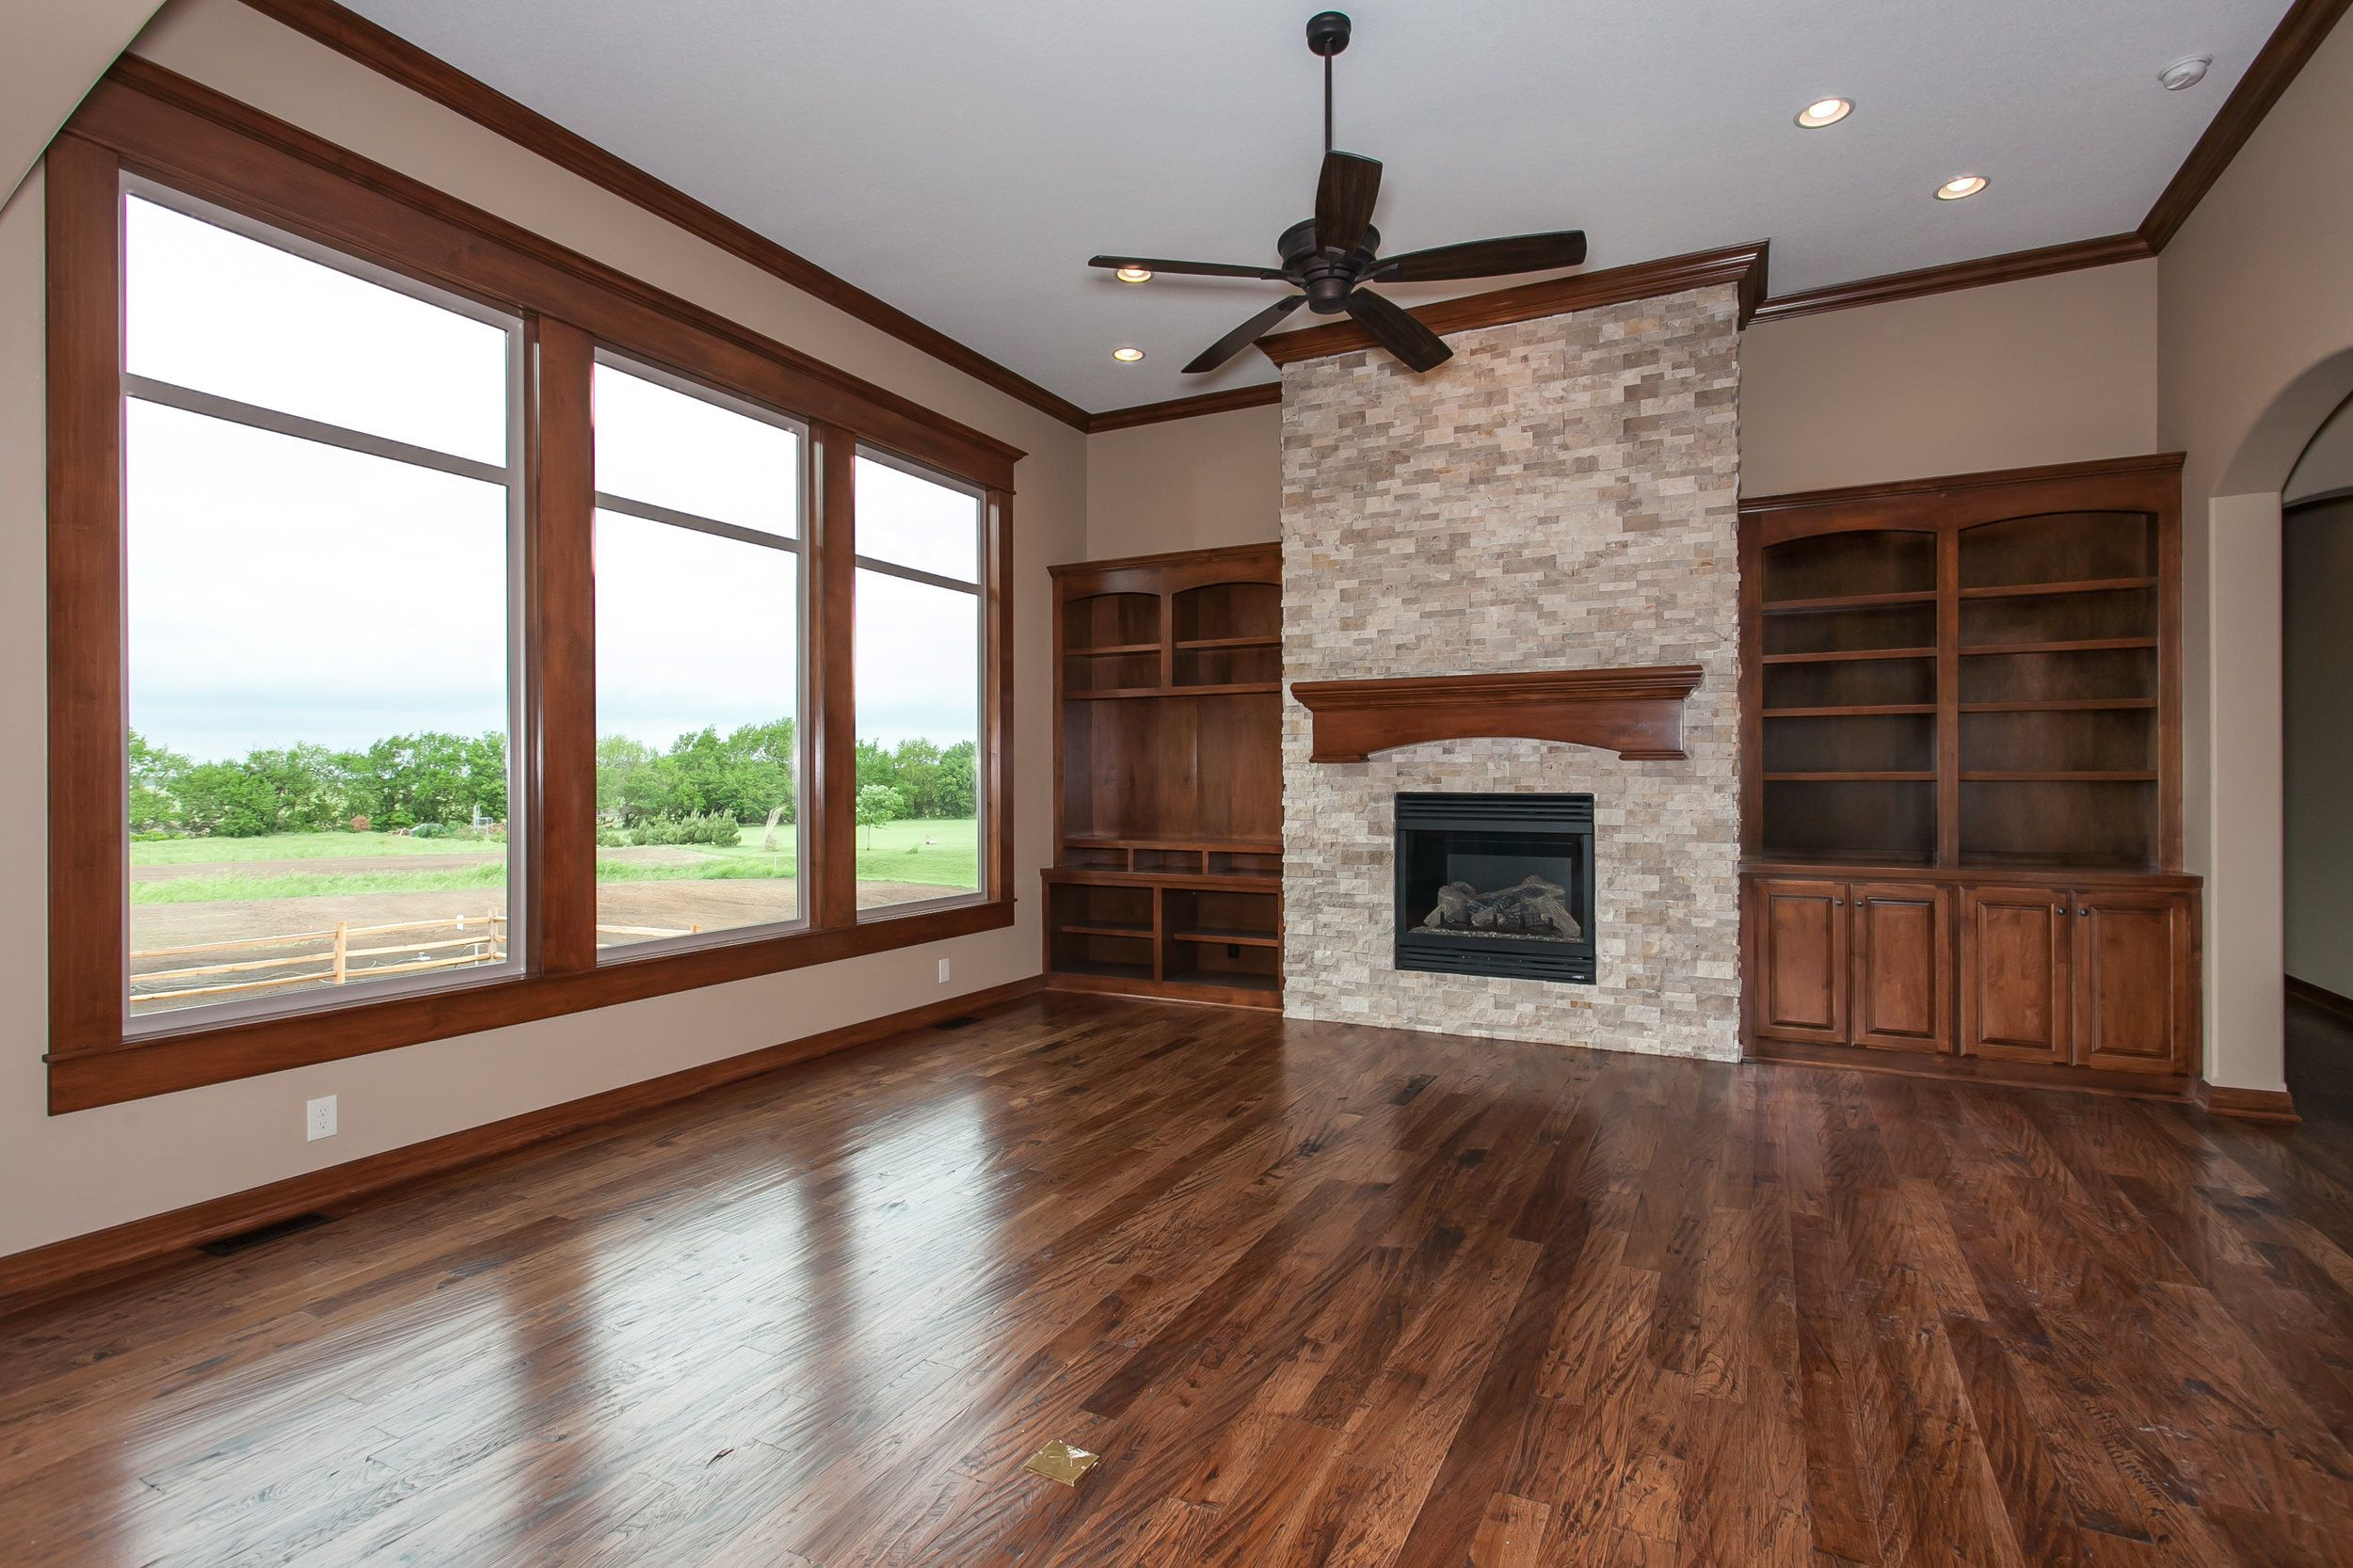 Pin On 3 000 Sq Ft Rustic With Media Room Upstairs